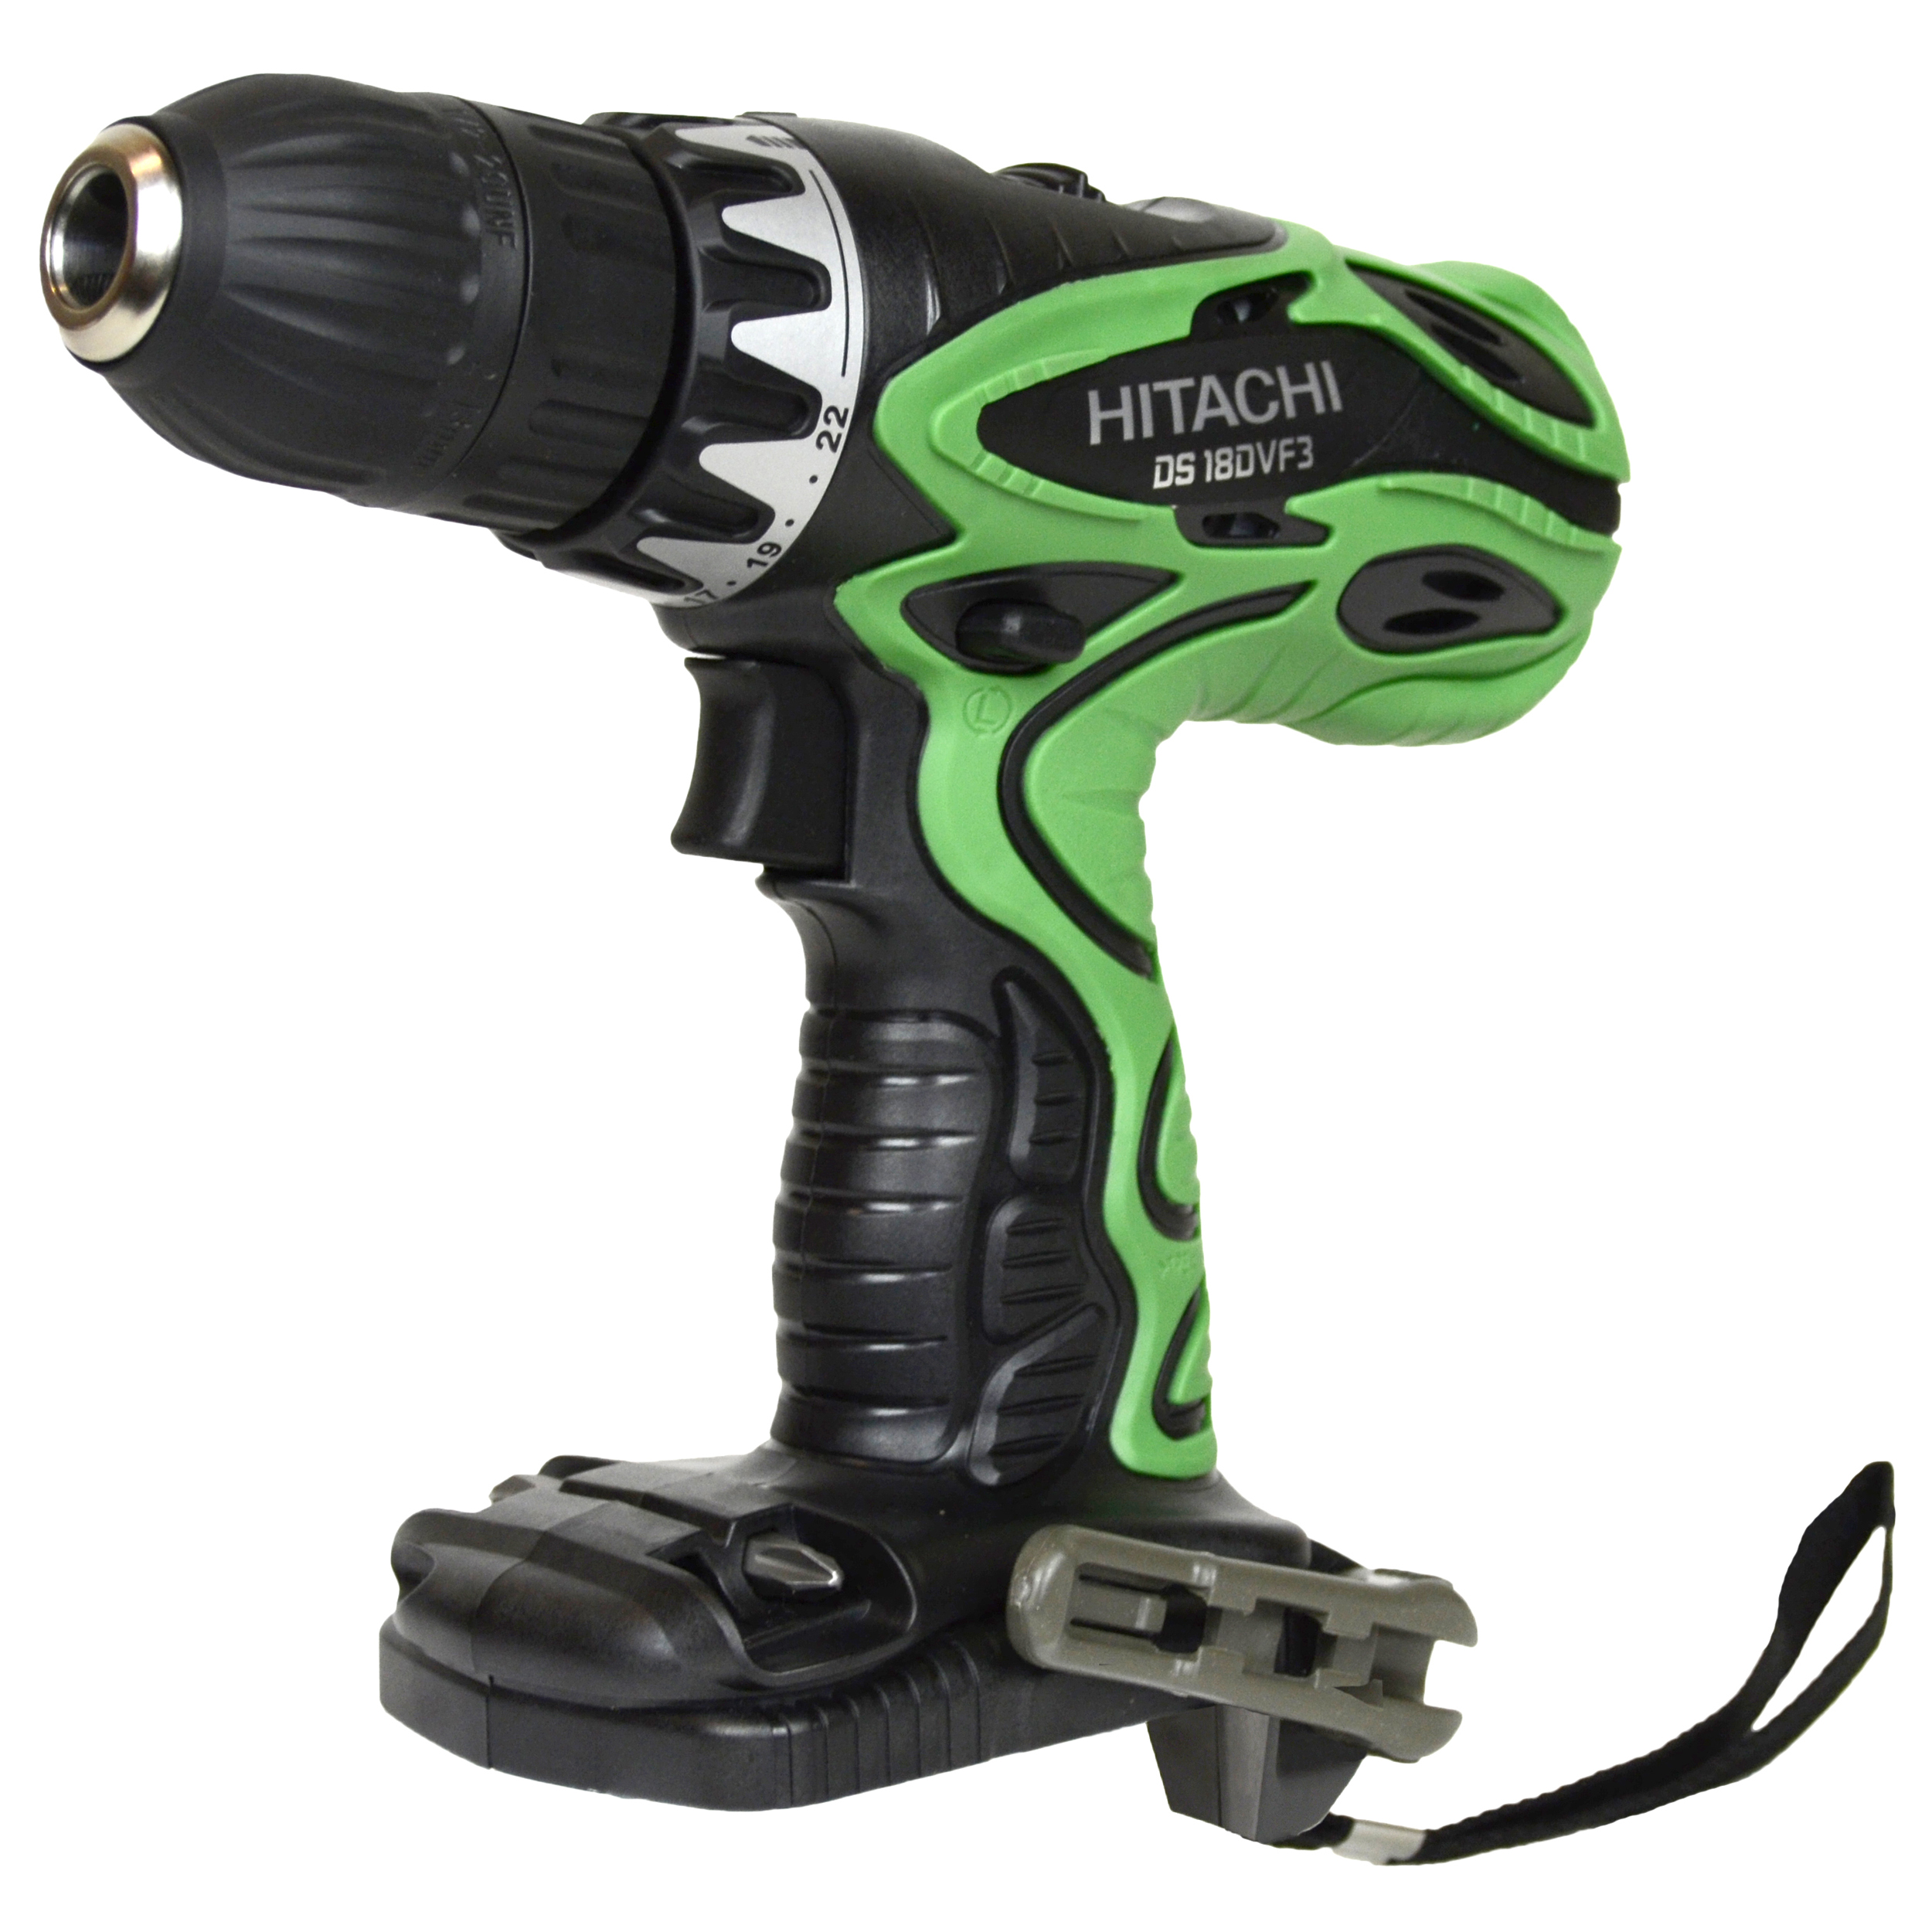 "Hitachi Power Tools DS18DVF3 18V NiCd 1/2"" Cordless Drill Driver, Bare Tool"